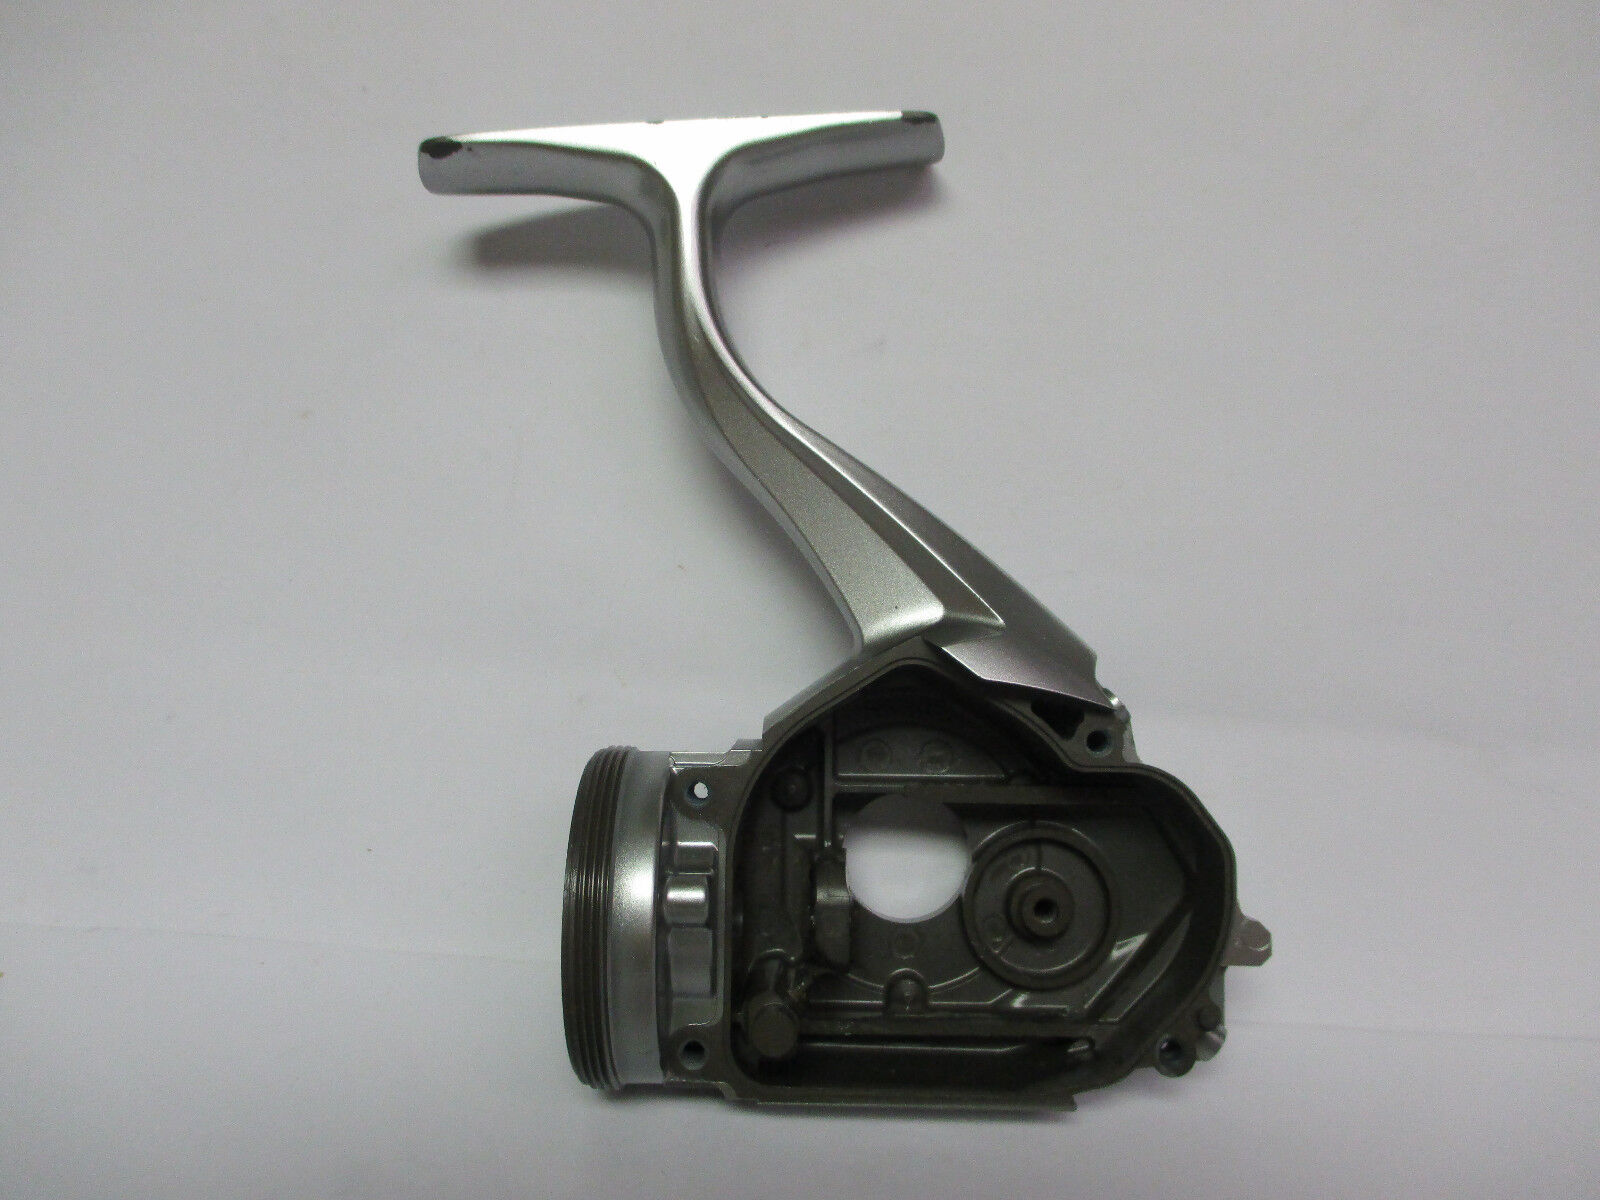 USED Saltiga DAIWA SPINNING REEL PART - Saltiga USED 4500H - Body Assembly 84872a